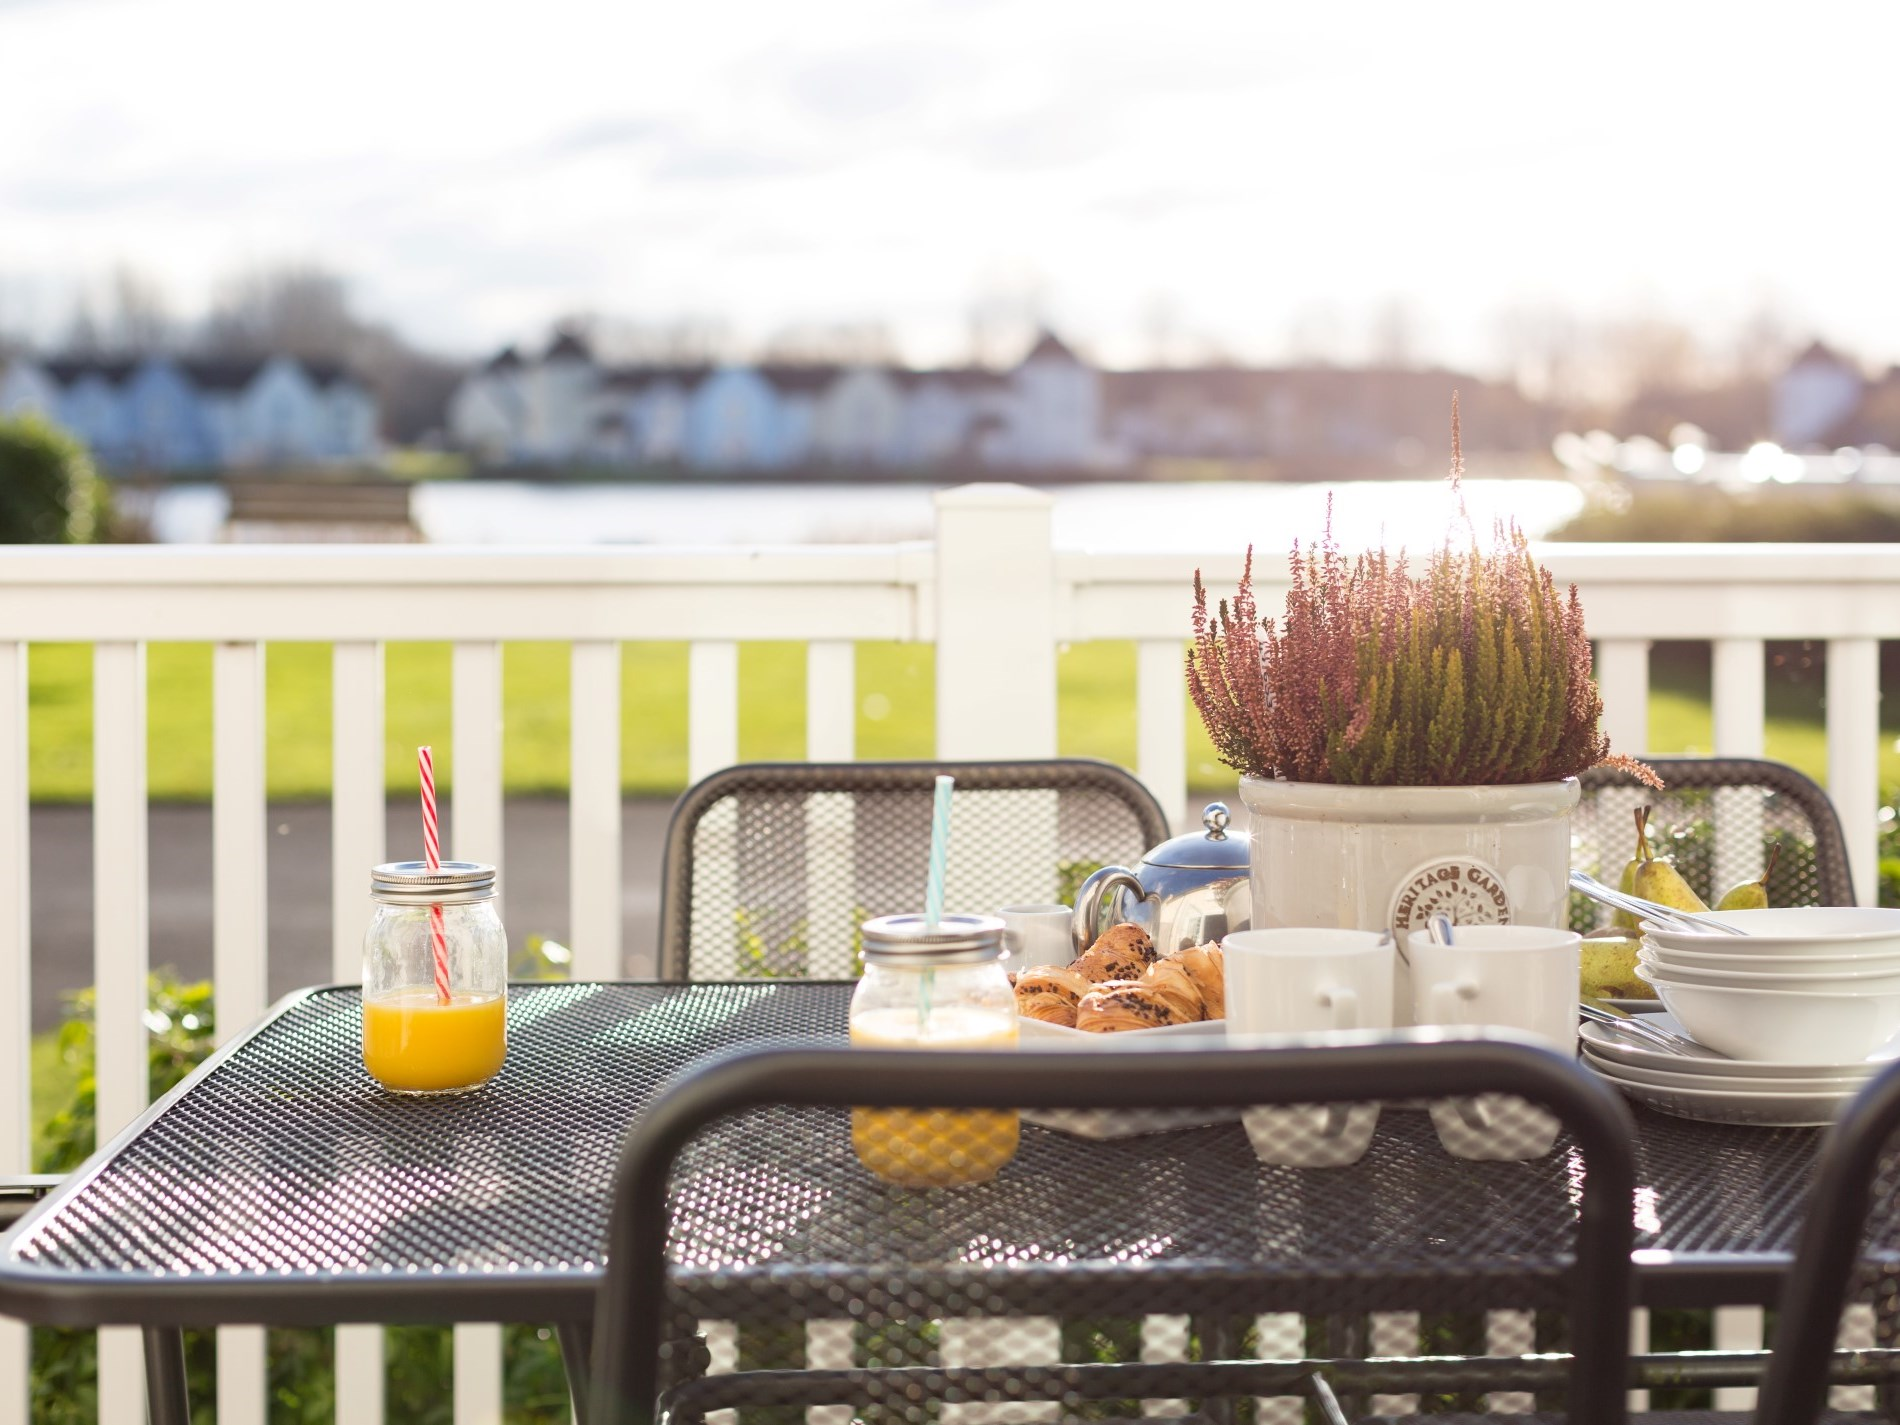 Lovely balcony with garden furniture and BBQ